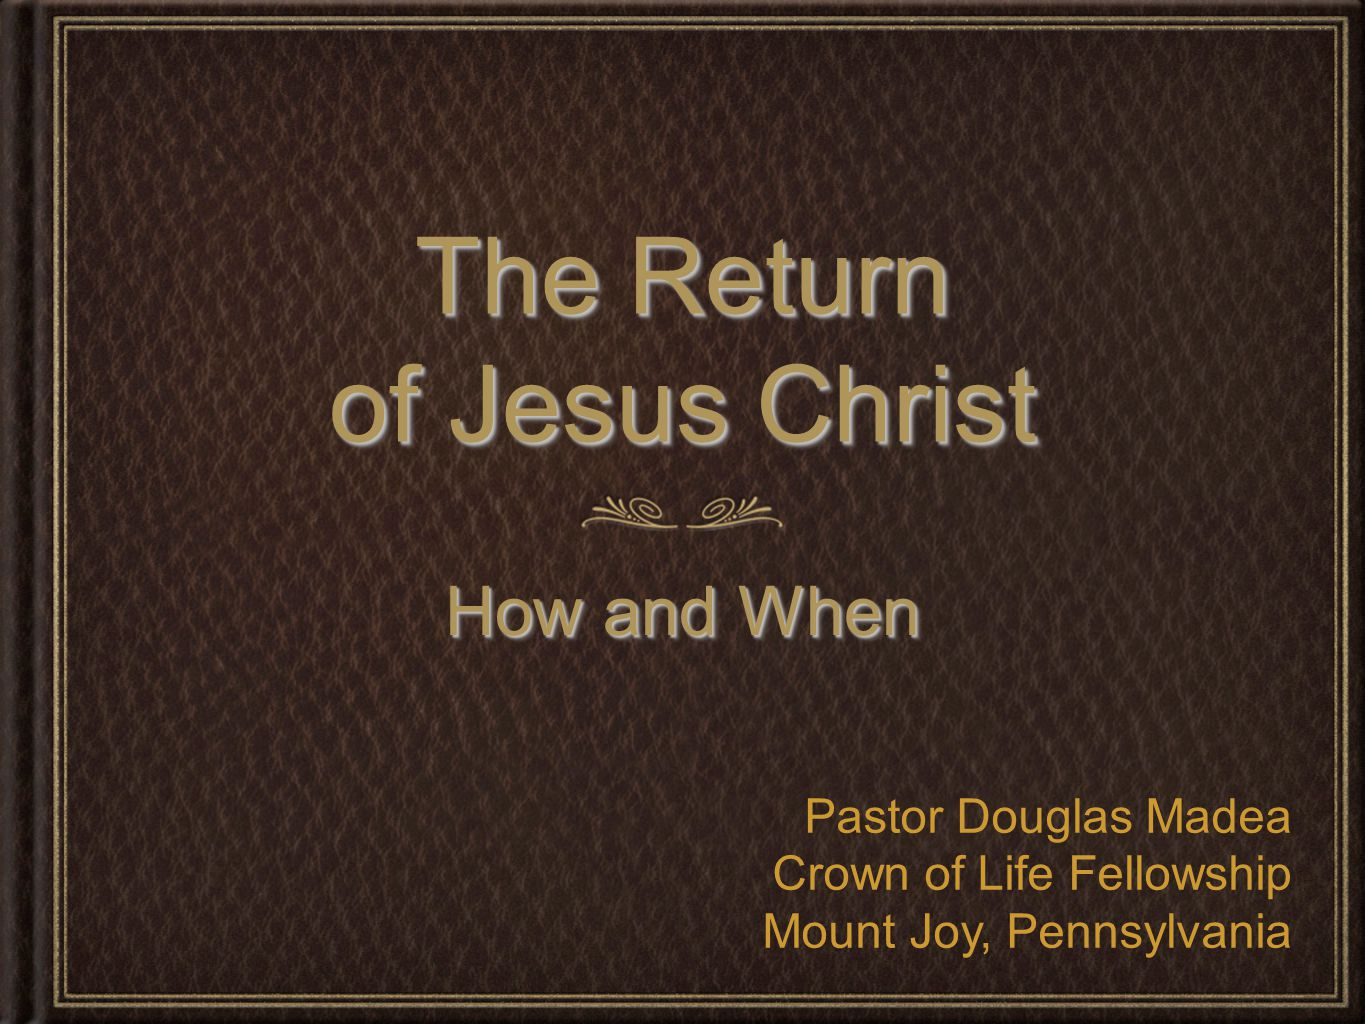 The Return of Jesus Christ How and When Pastor Douglas Madea Crown of Life Fellowship Mount Joy, Pennsylvania